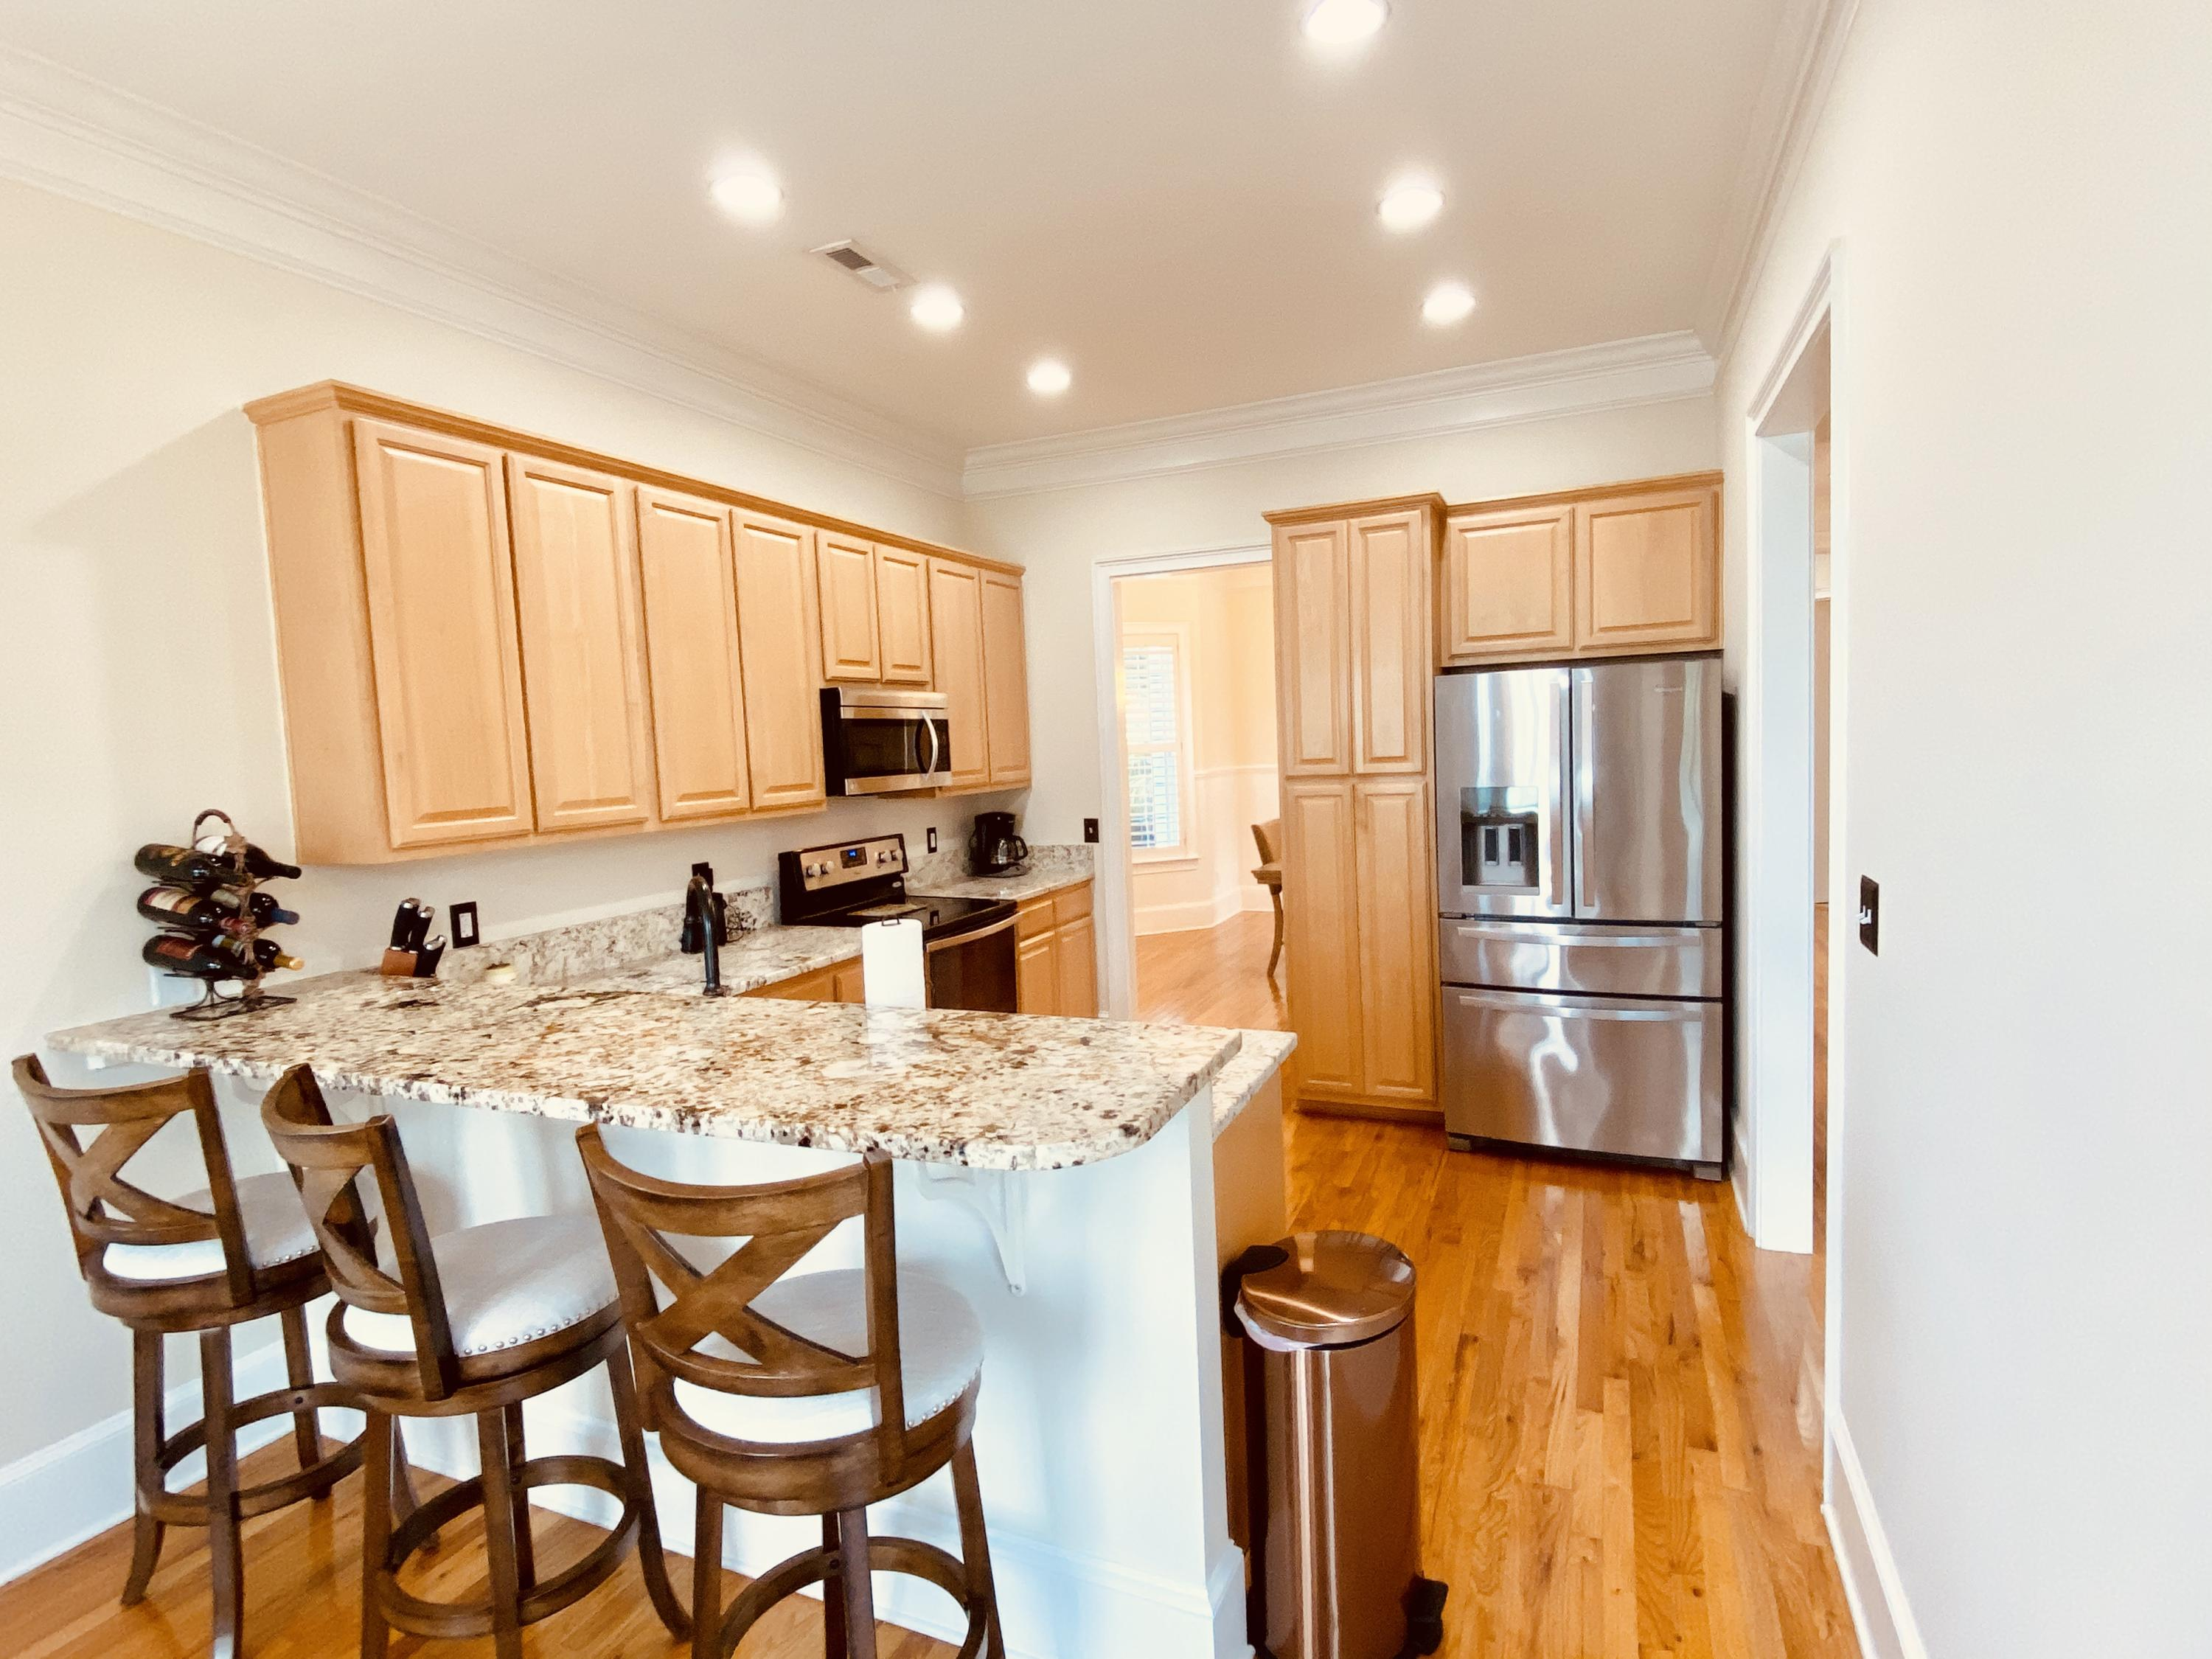 Rivertowne Country Club Homes For Sale - 1721 Rivertowne Country Club, Mount Pleasant, SC - 54